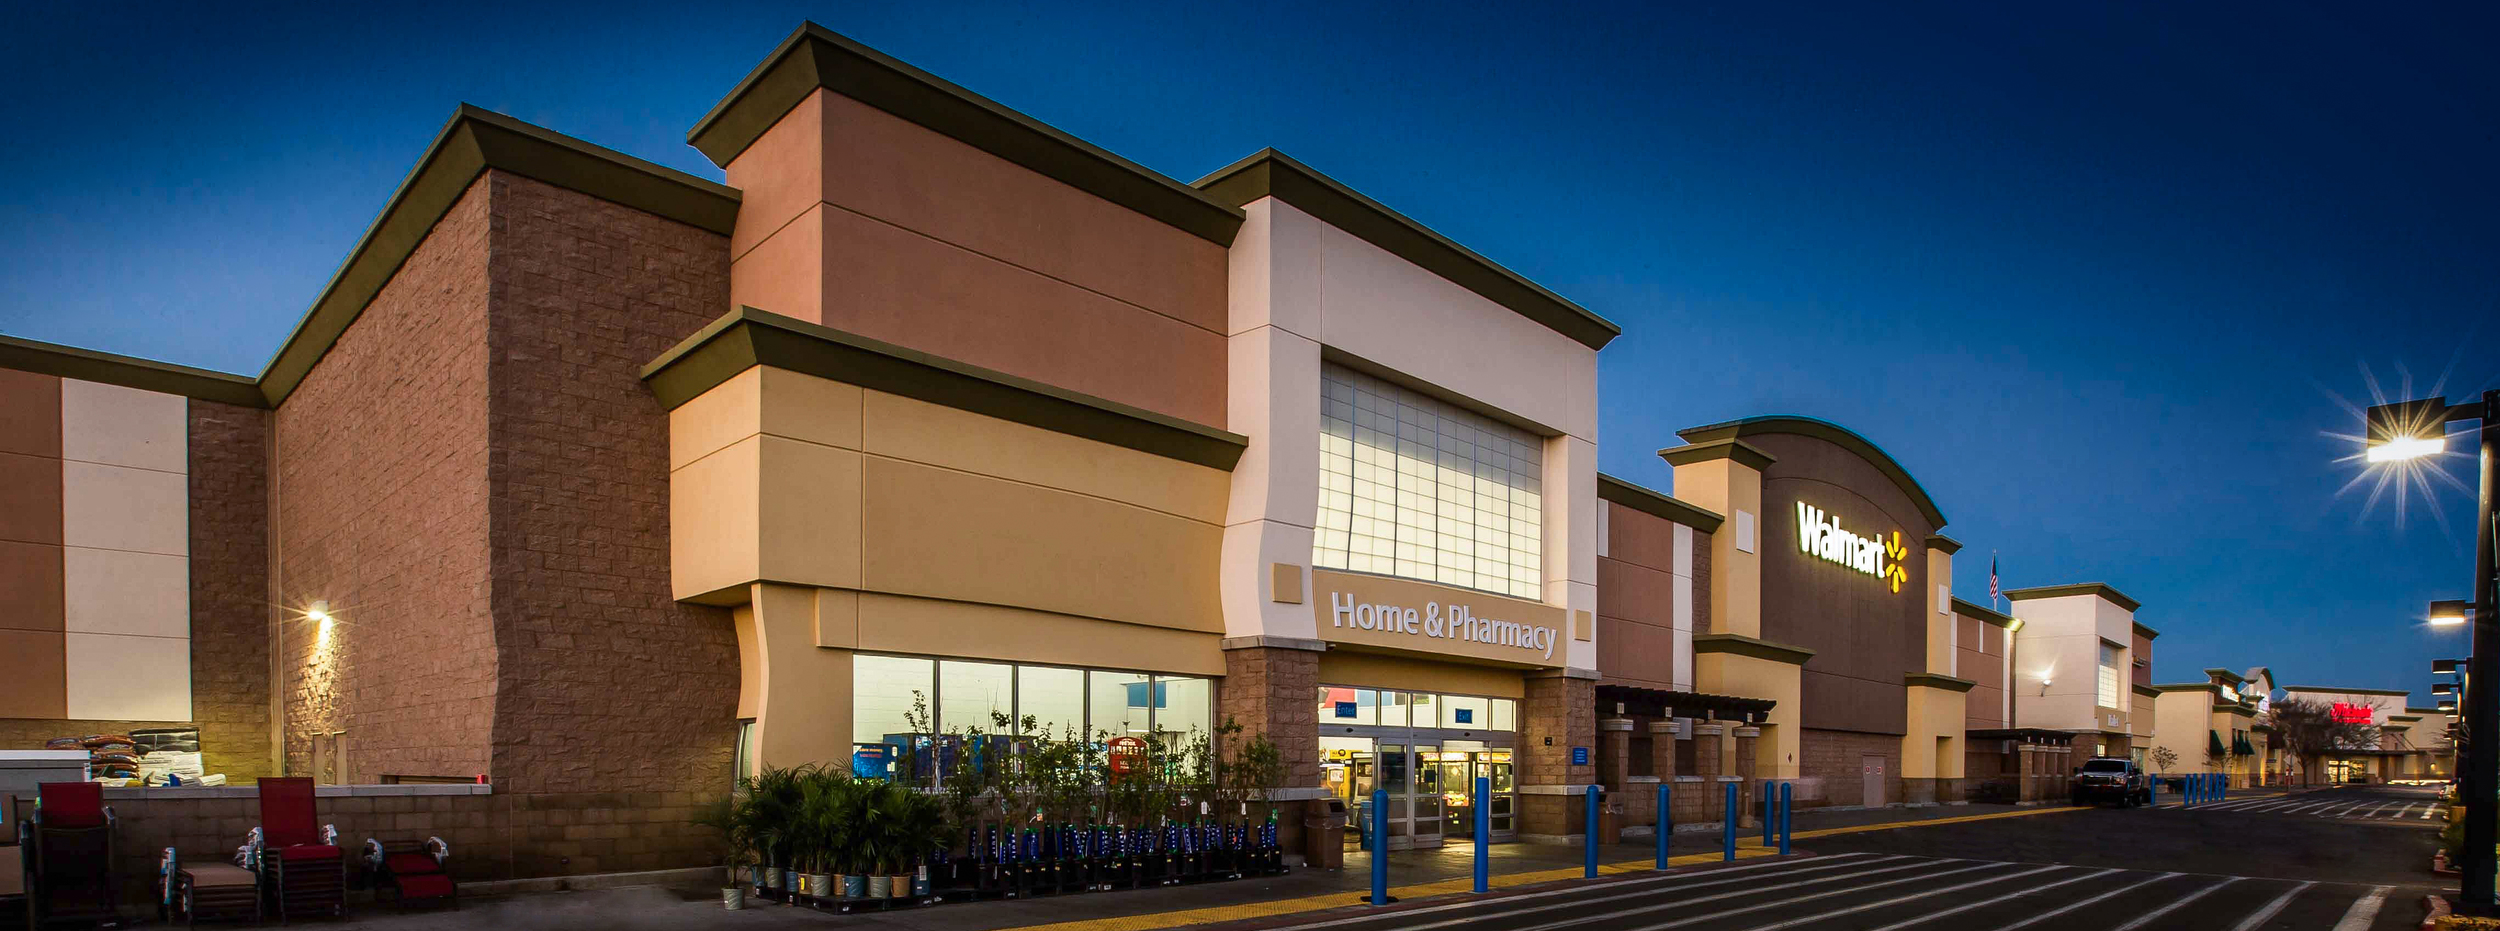 Development History Of Retail Property Brown Group Inc Retail